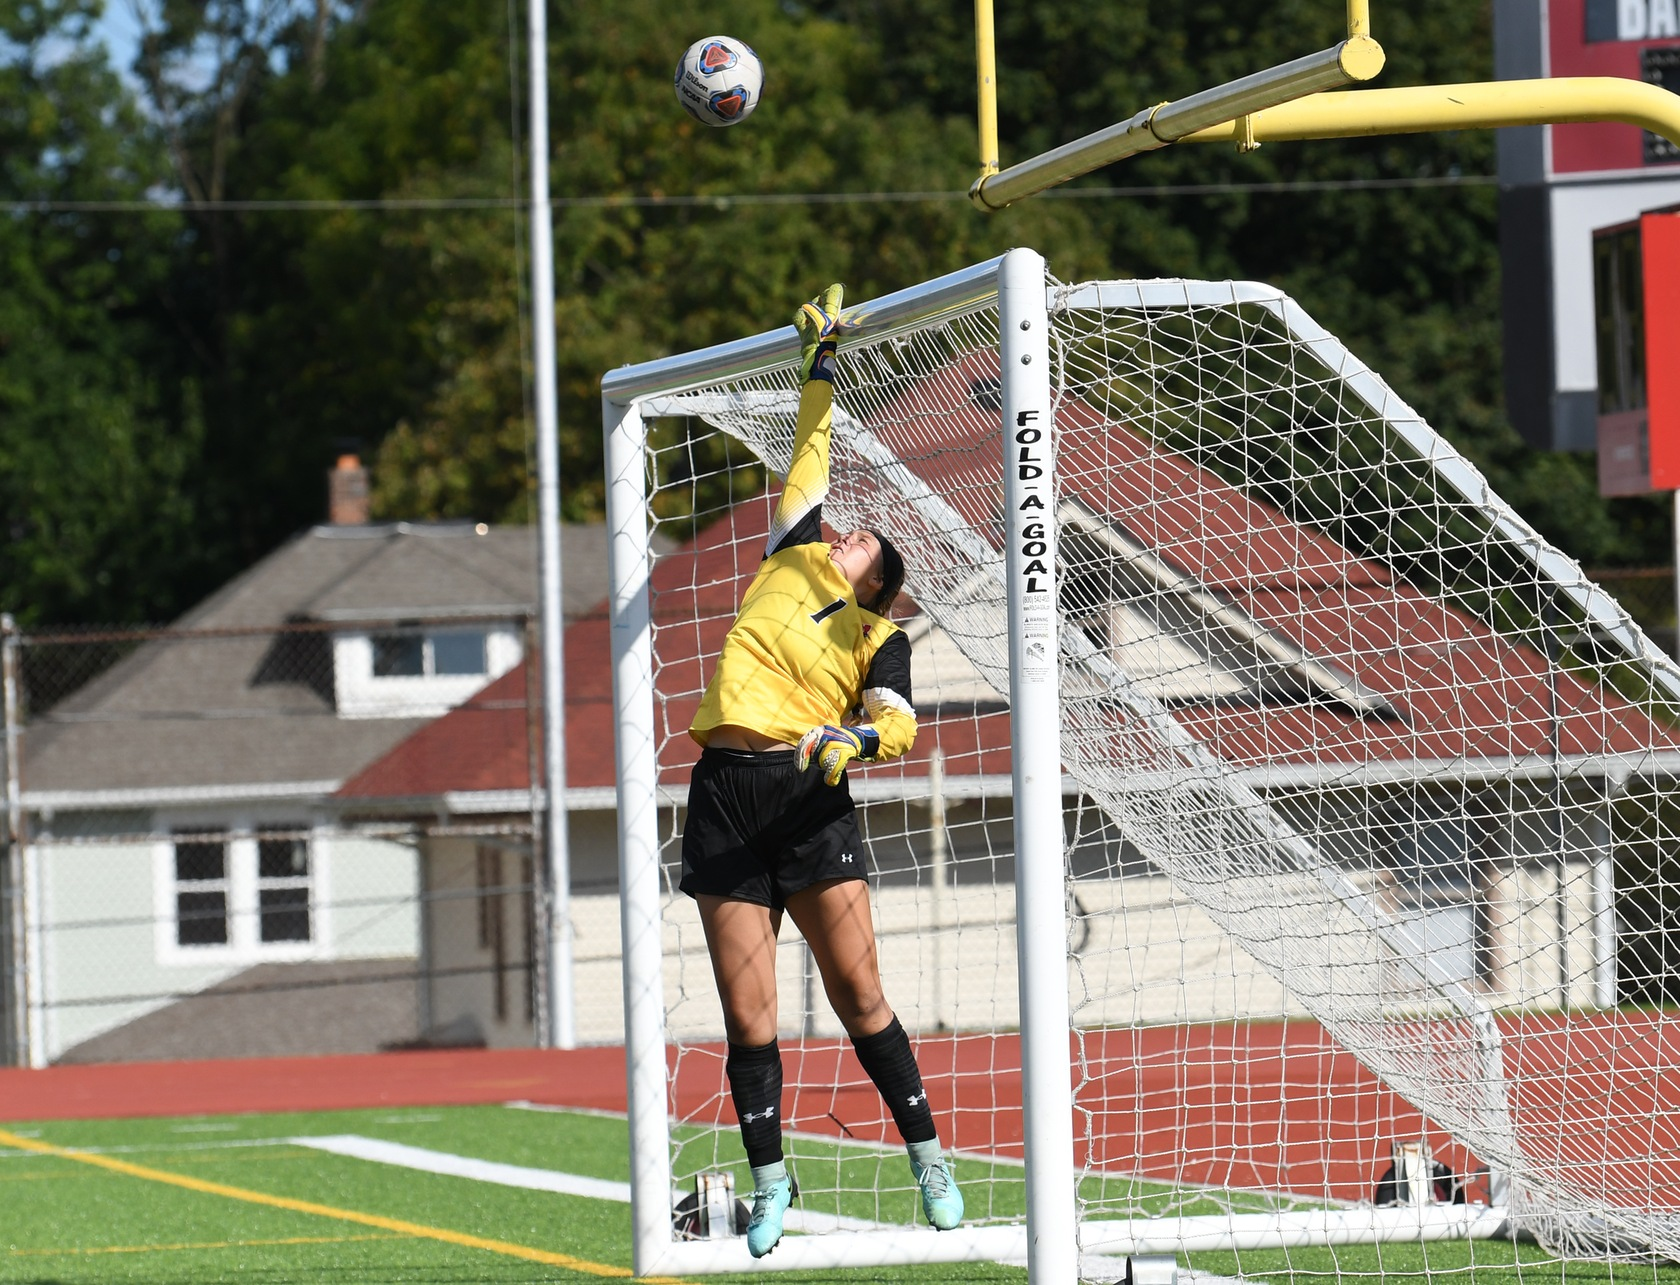 Tigers Fall to Wooster, 2-0